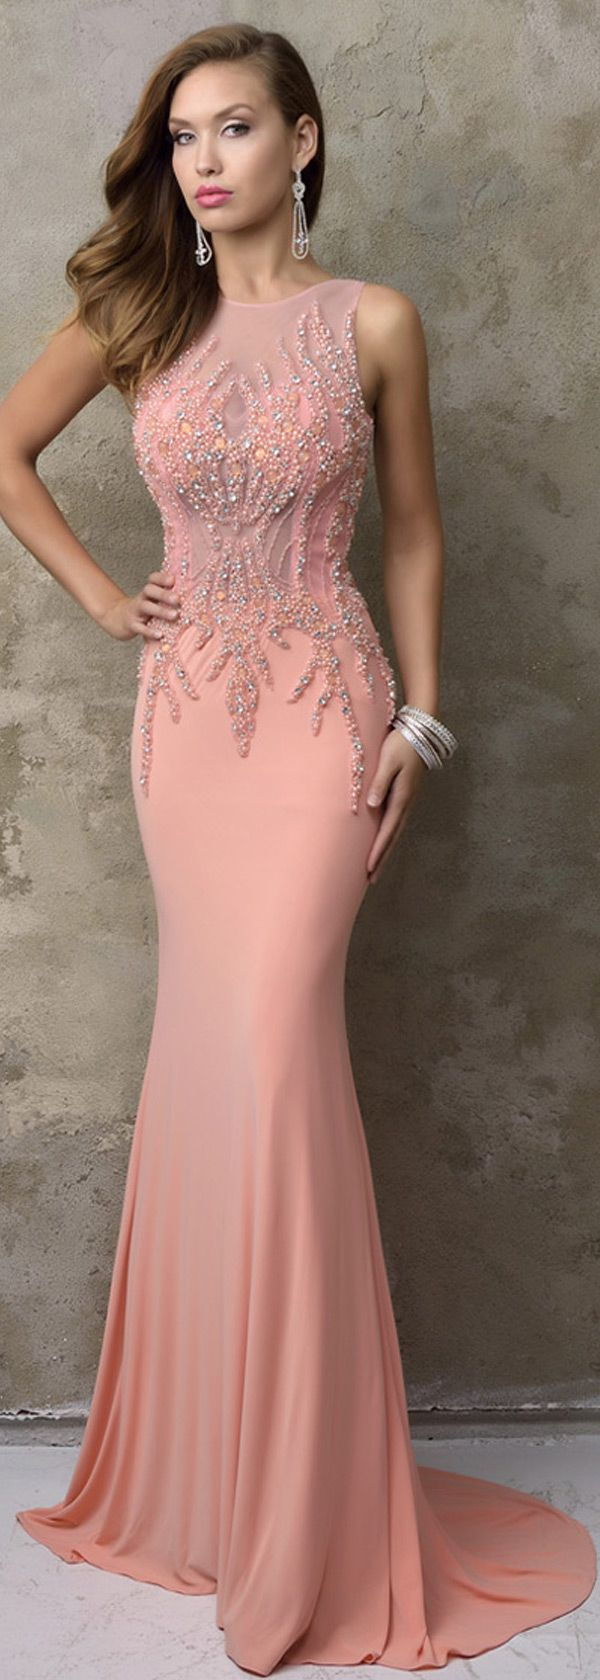 Alluring Chiffon Jewel Neckline Mermaid Evening Dresses With ...